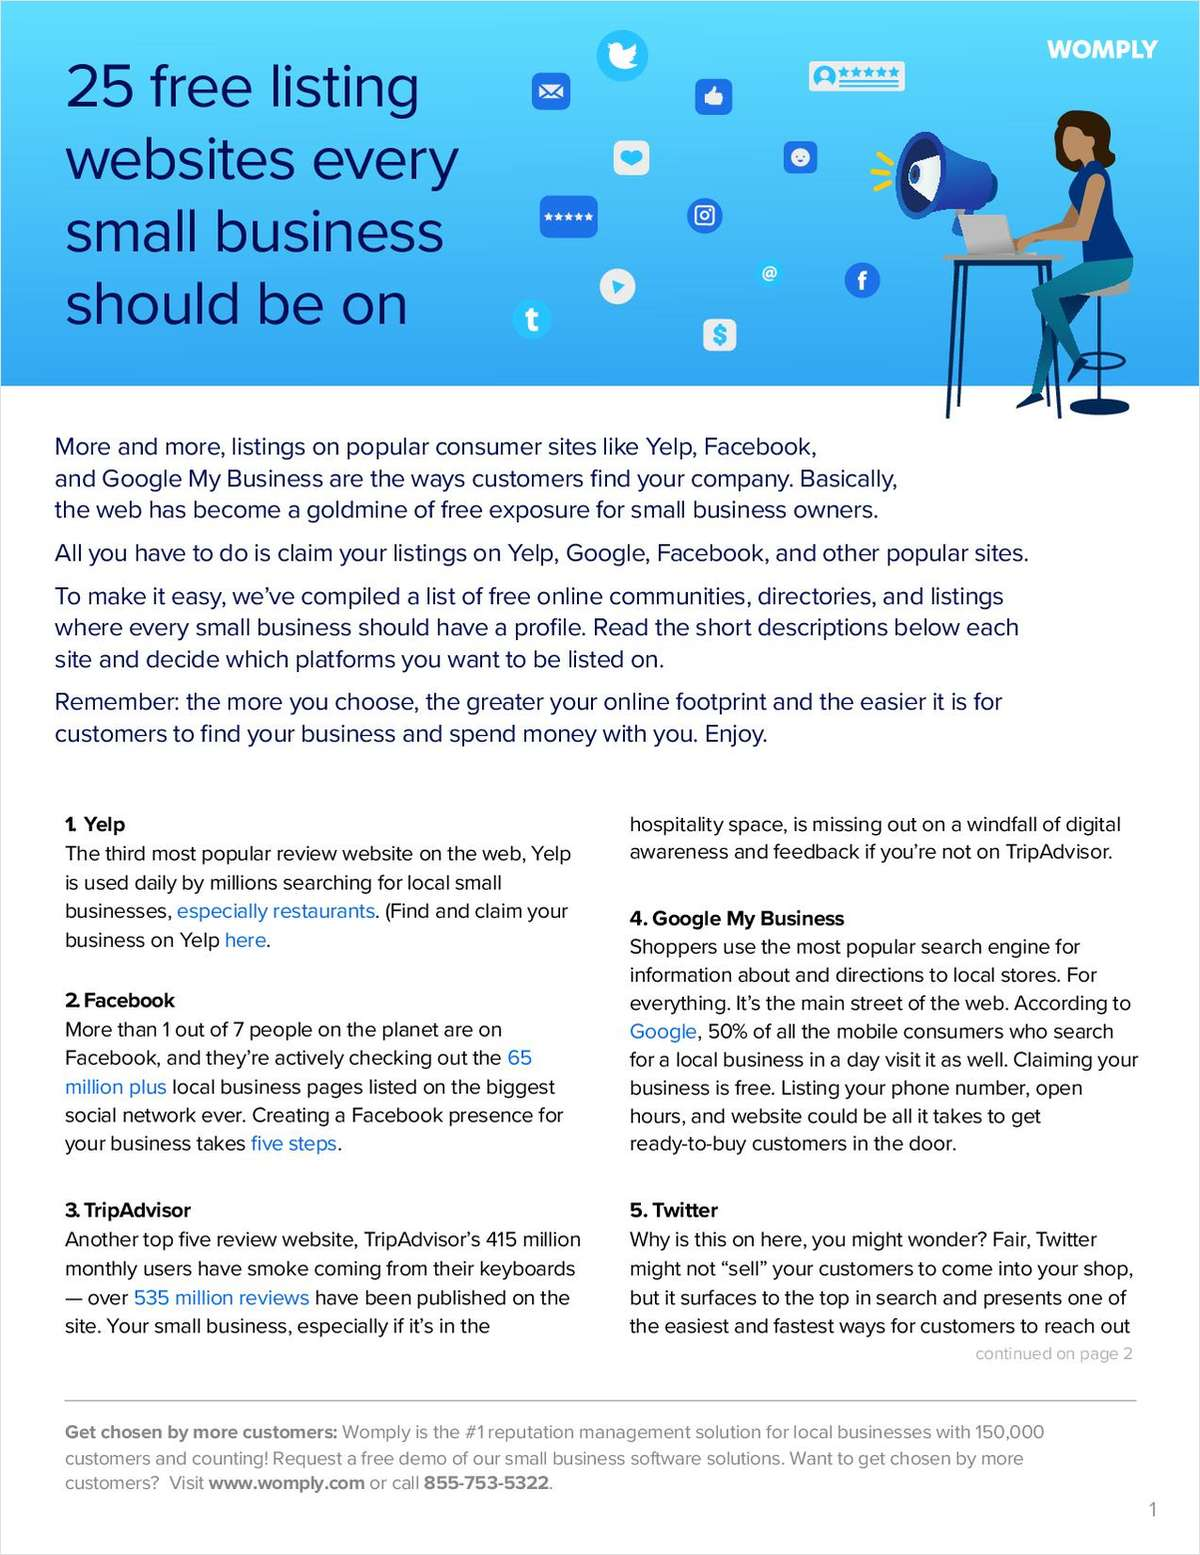 25 Free Listing Websites Every Small Business Should Be On